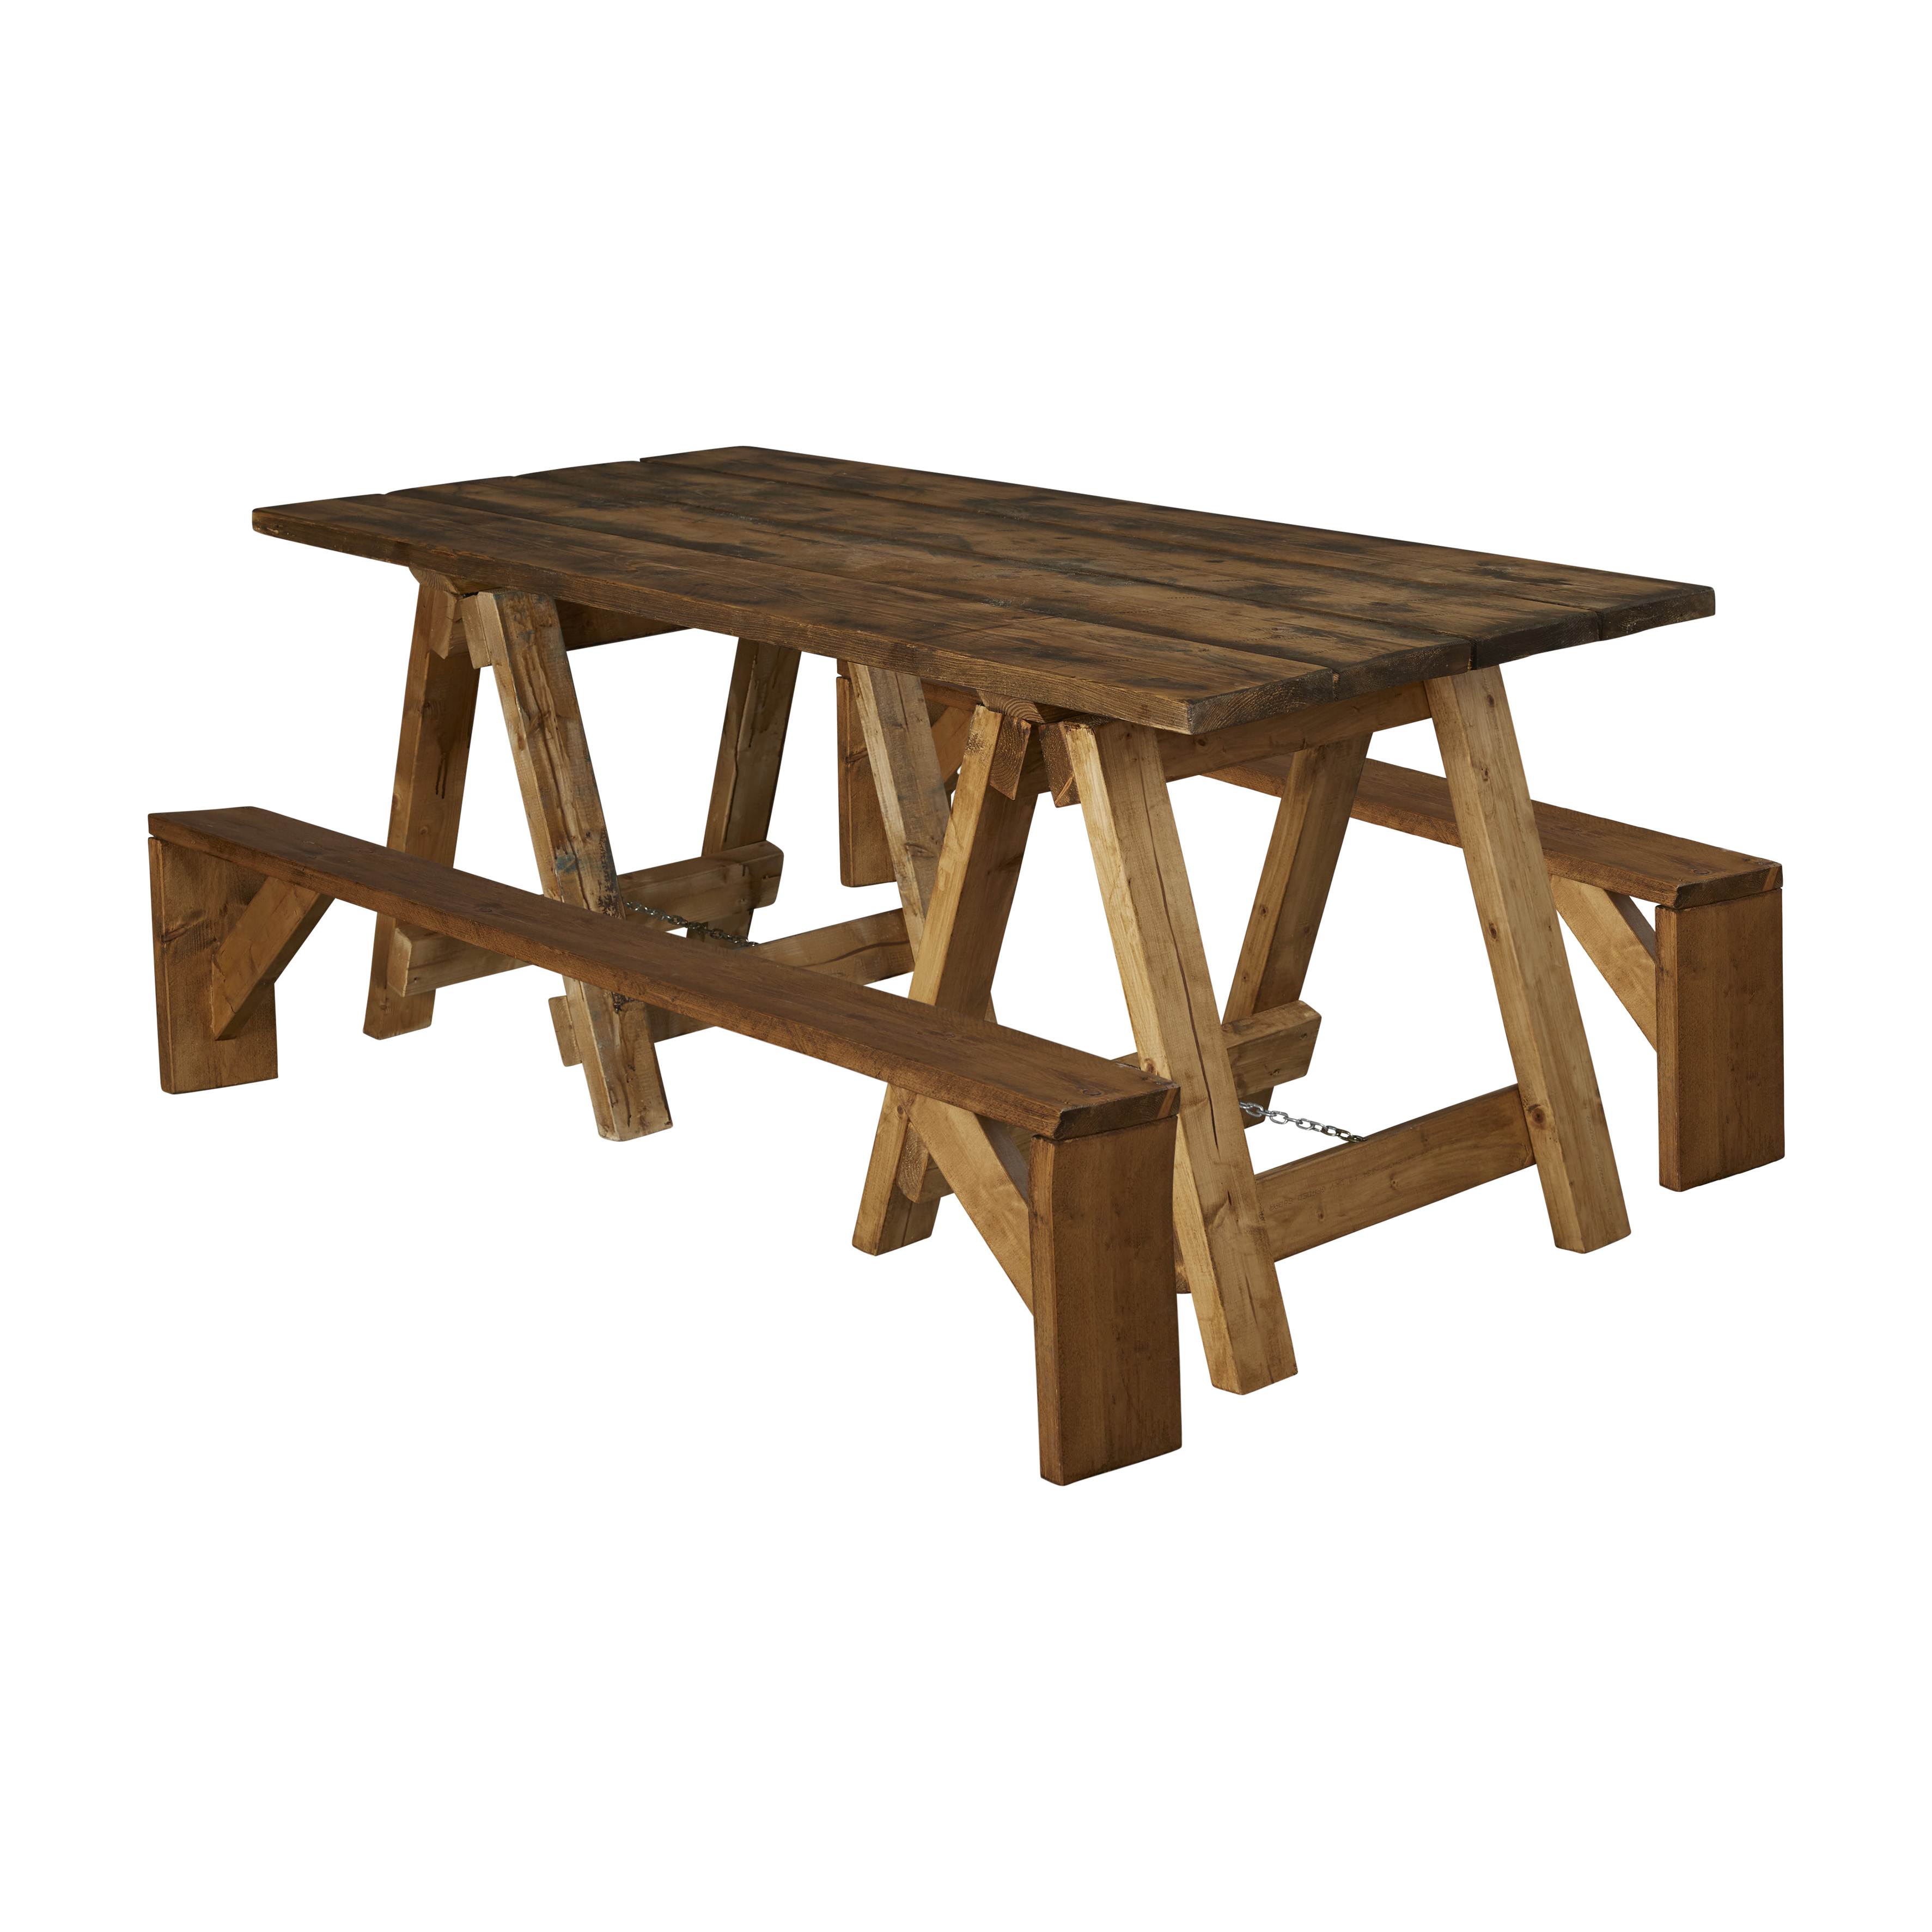 Wooden Trestle Table and bench Hire Package